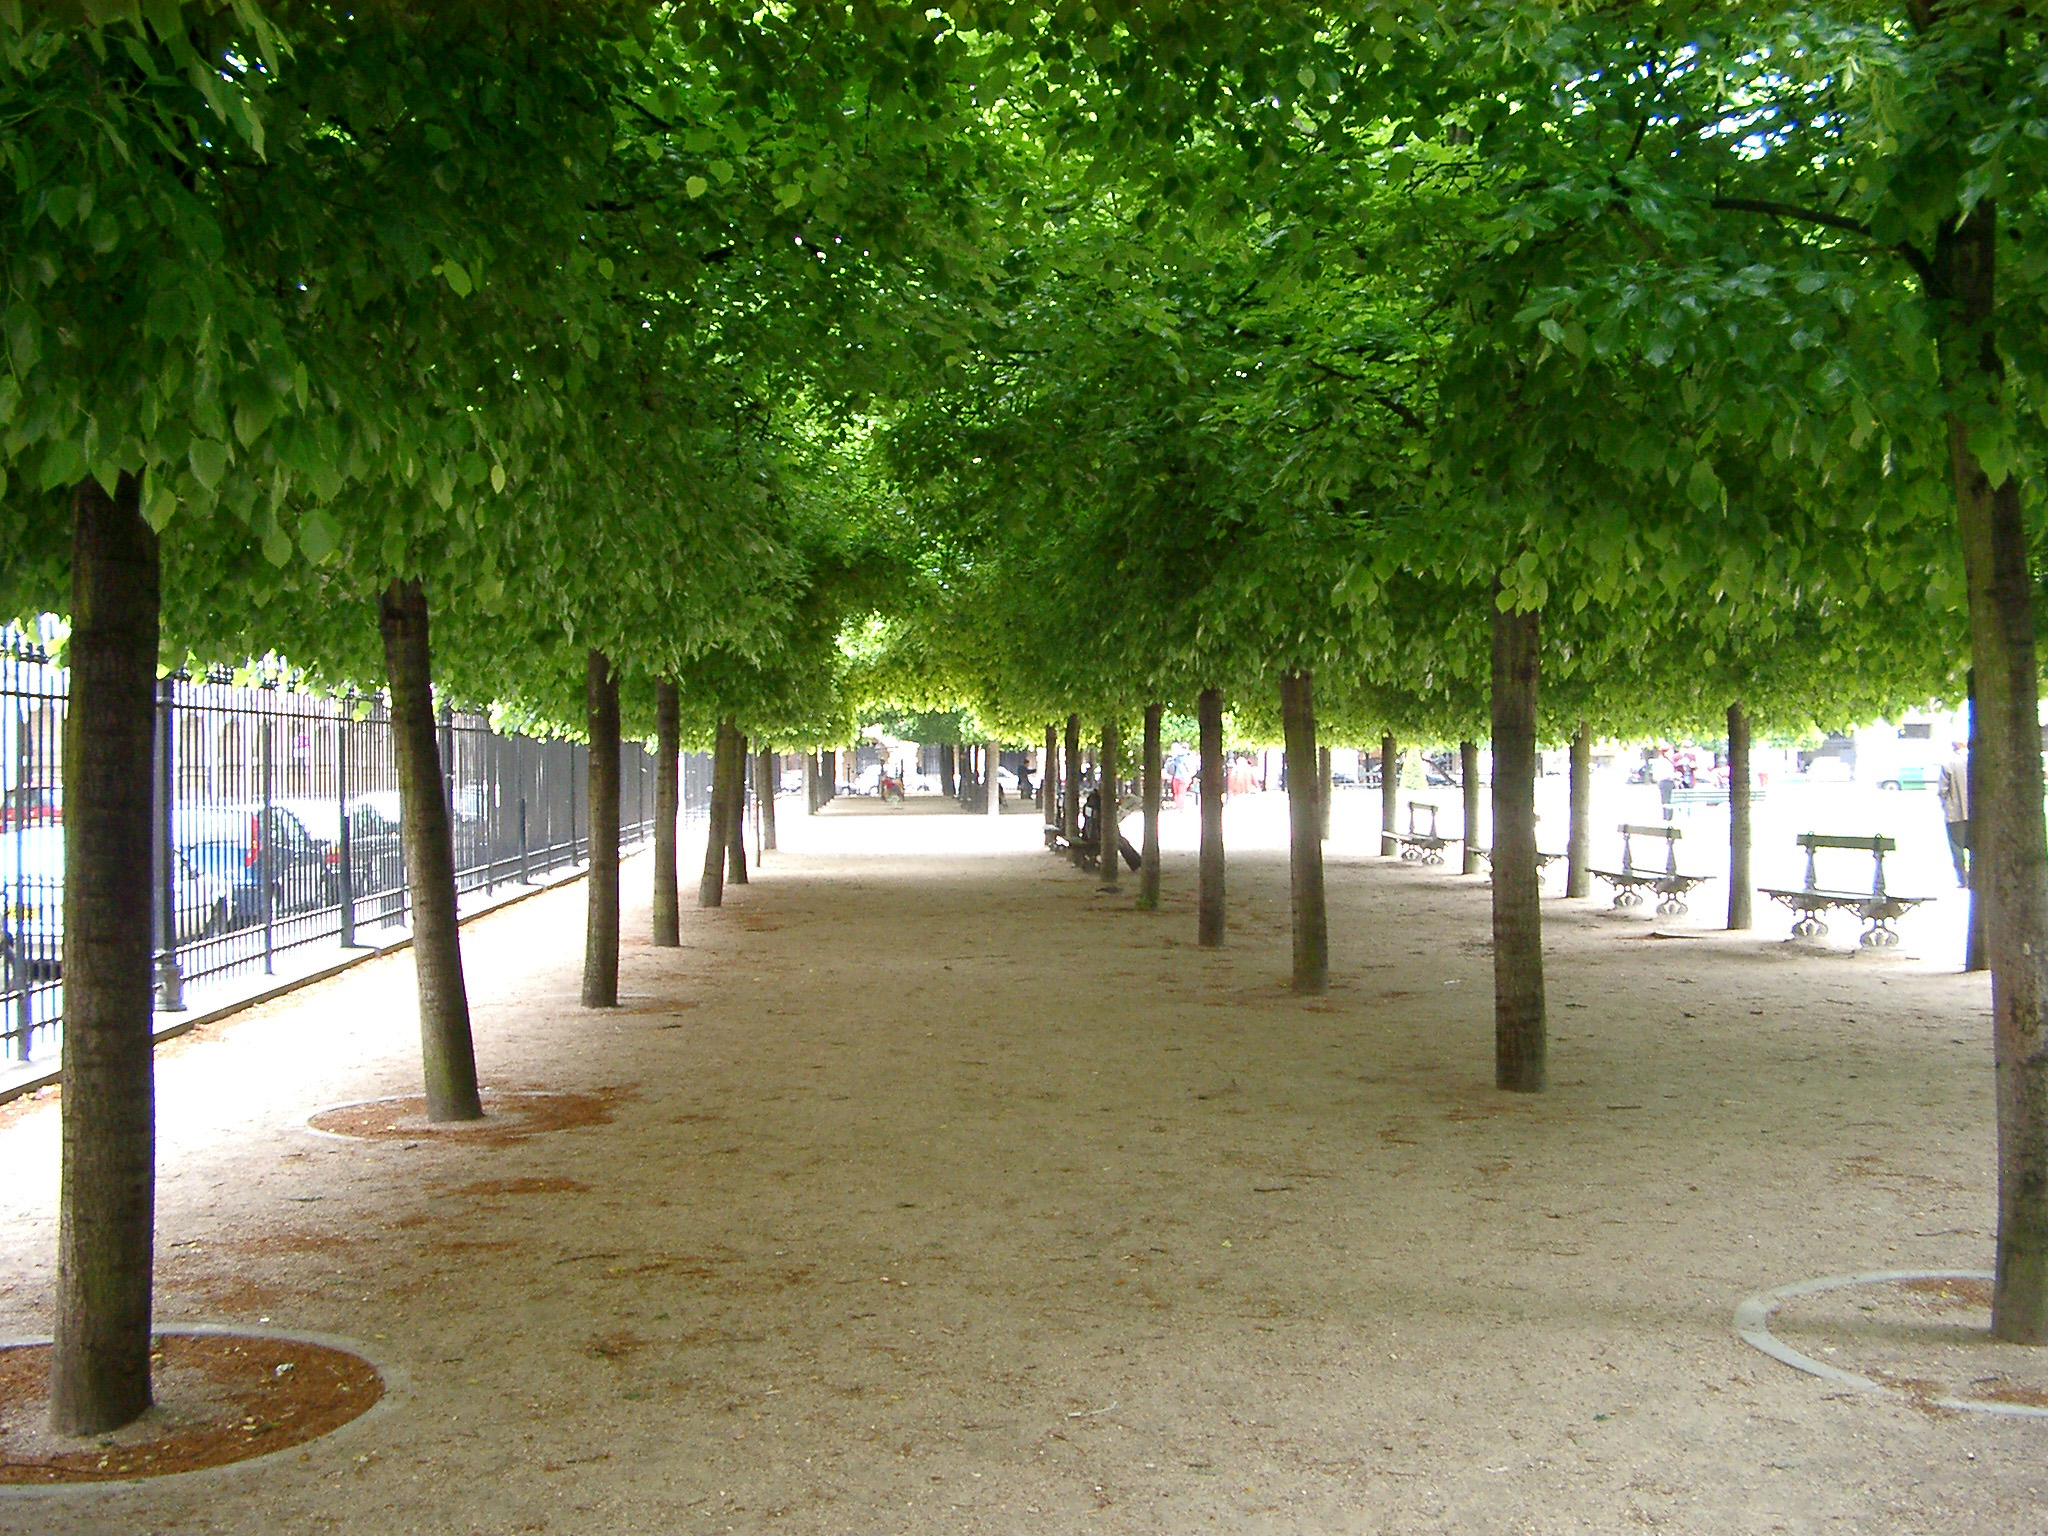 Avenue of neatly manicured and pruned green trees in Paris lining a walkway in park, receding perspective